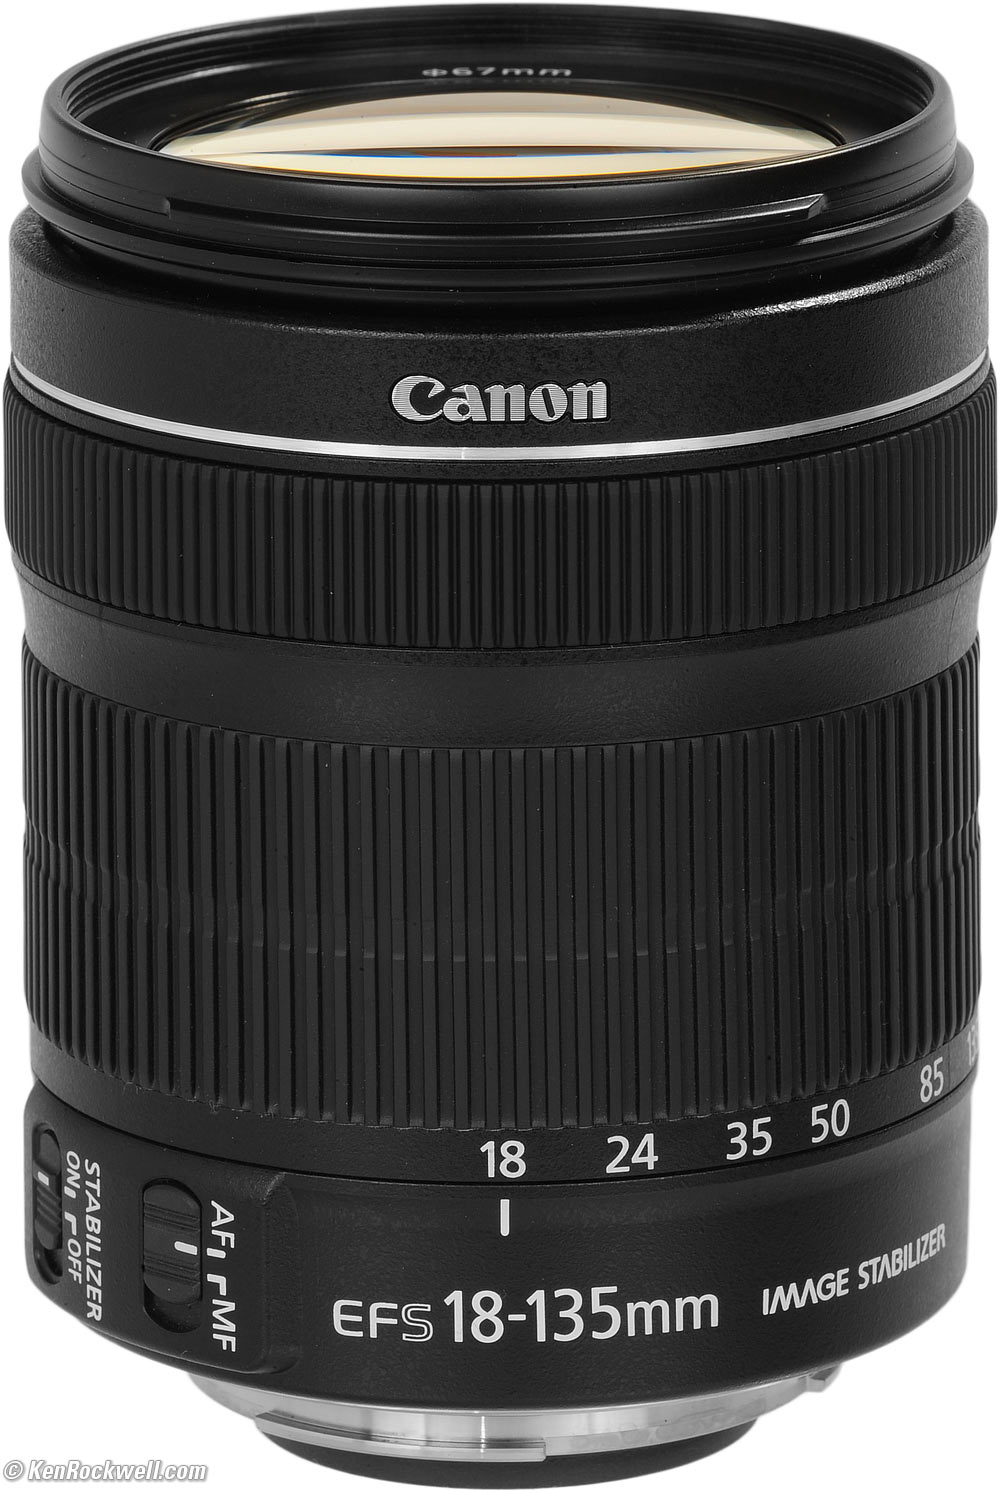 Image of Canon EF-S 18-135mm f/3.5-5.6 IS STM Lens For Canon Mount